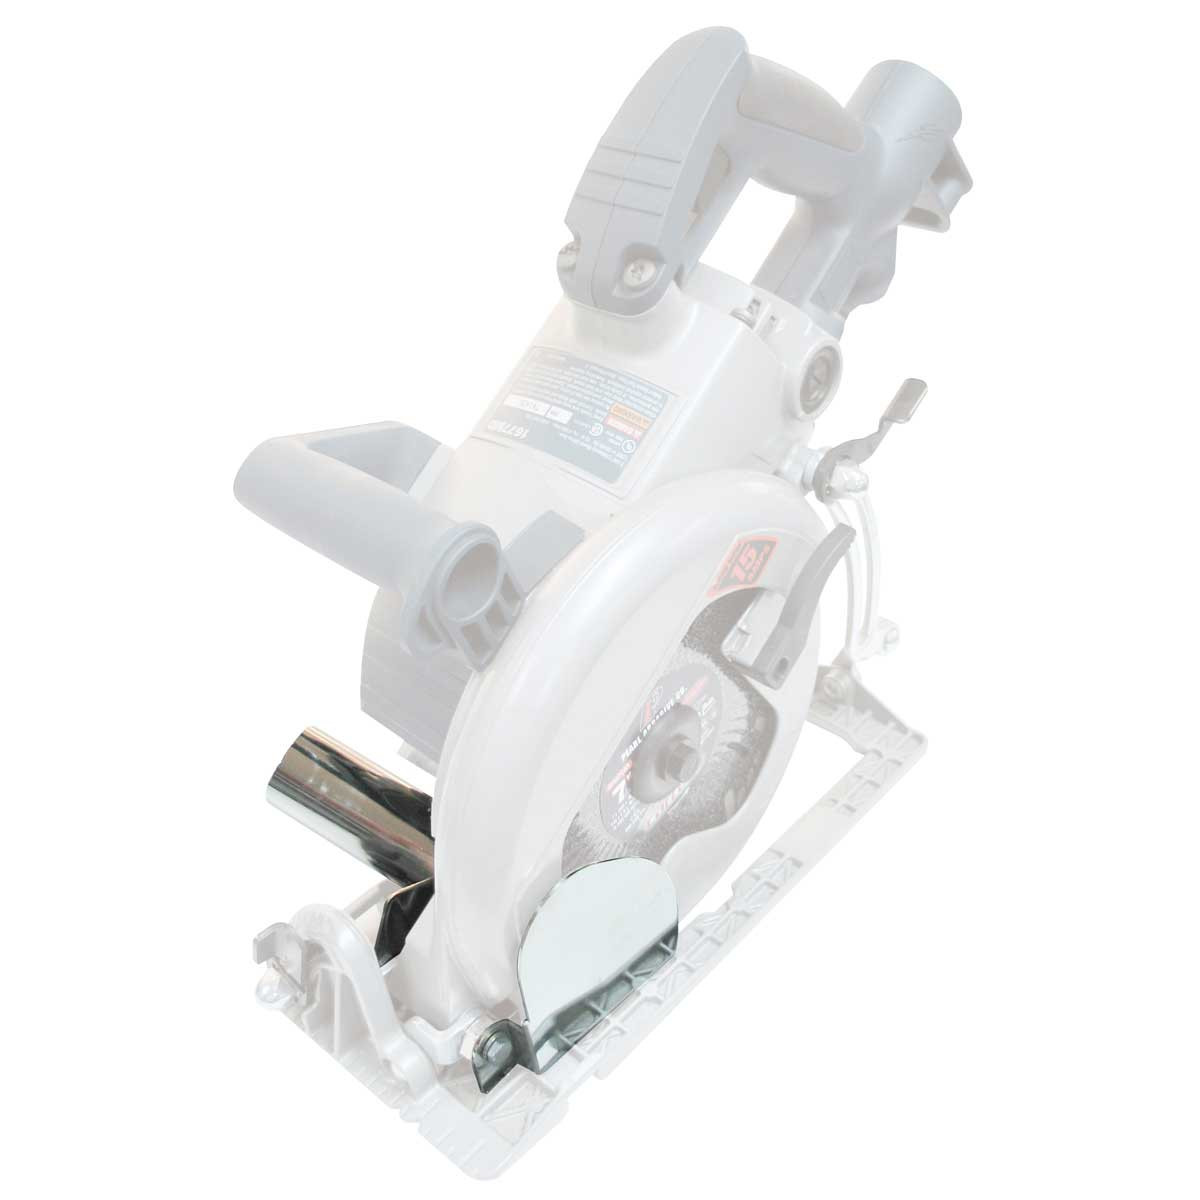 stainless steel attachment for peal sawvac